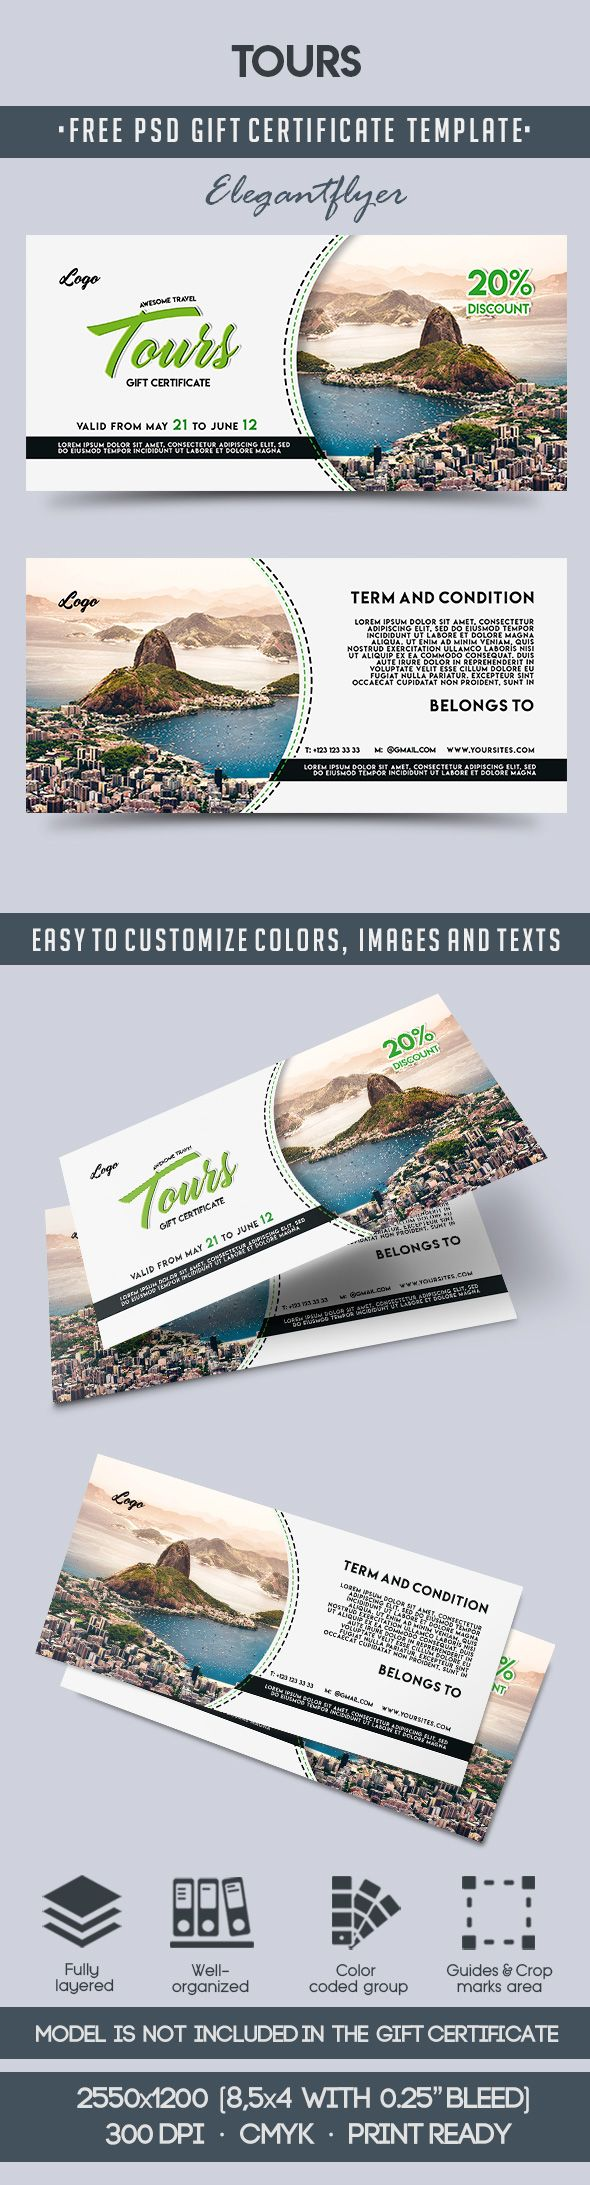 Tours – Free Gift Certificate PSD Template